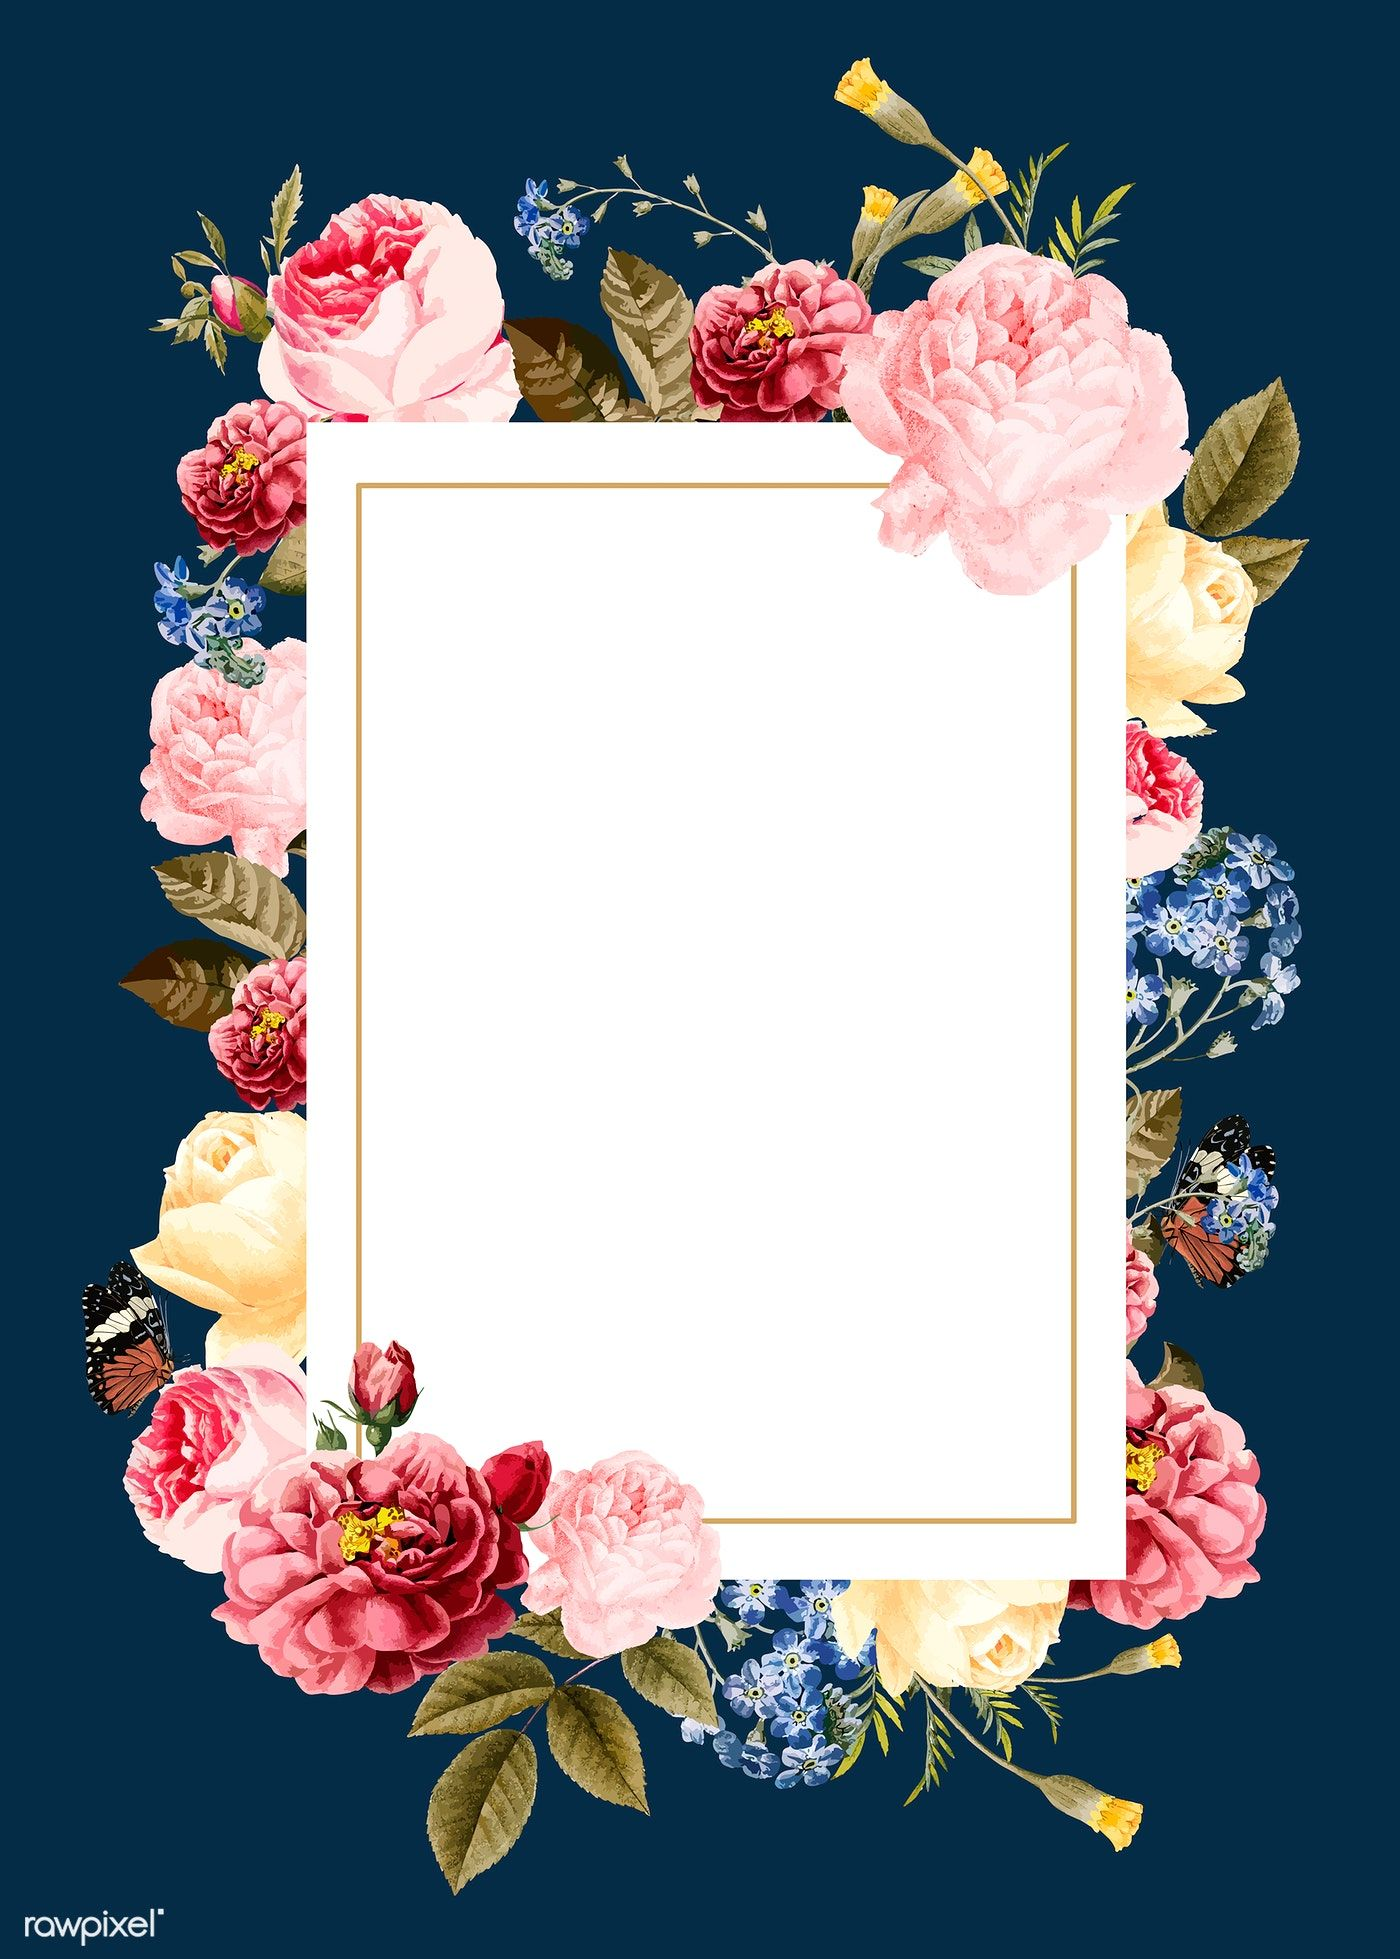 Free Wedding Page Border, Download Free Clip Art, Free ... |Flower Border Designs For Wedding Cards